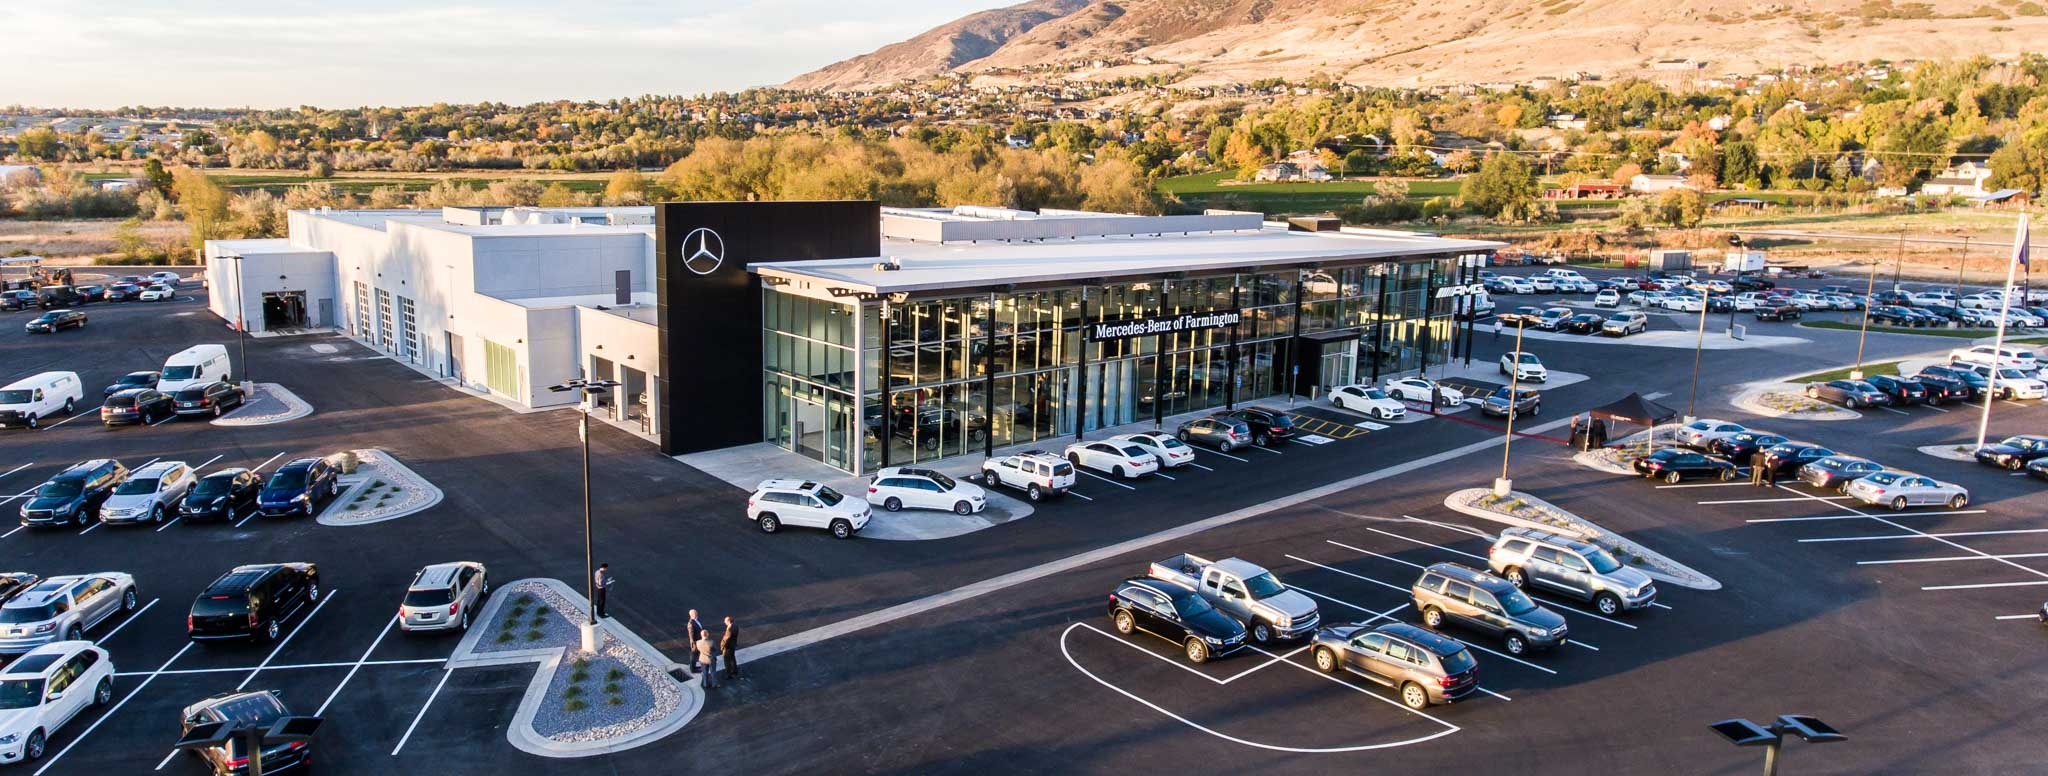 Mercedes benz of farmington by the numbers mercedes for Mercedes benz winter event commercial